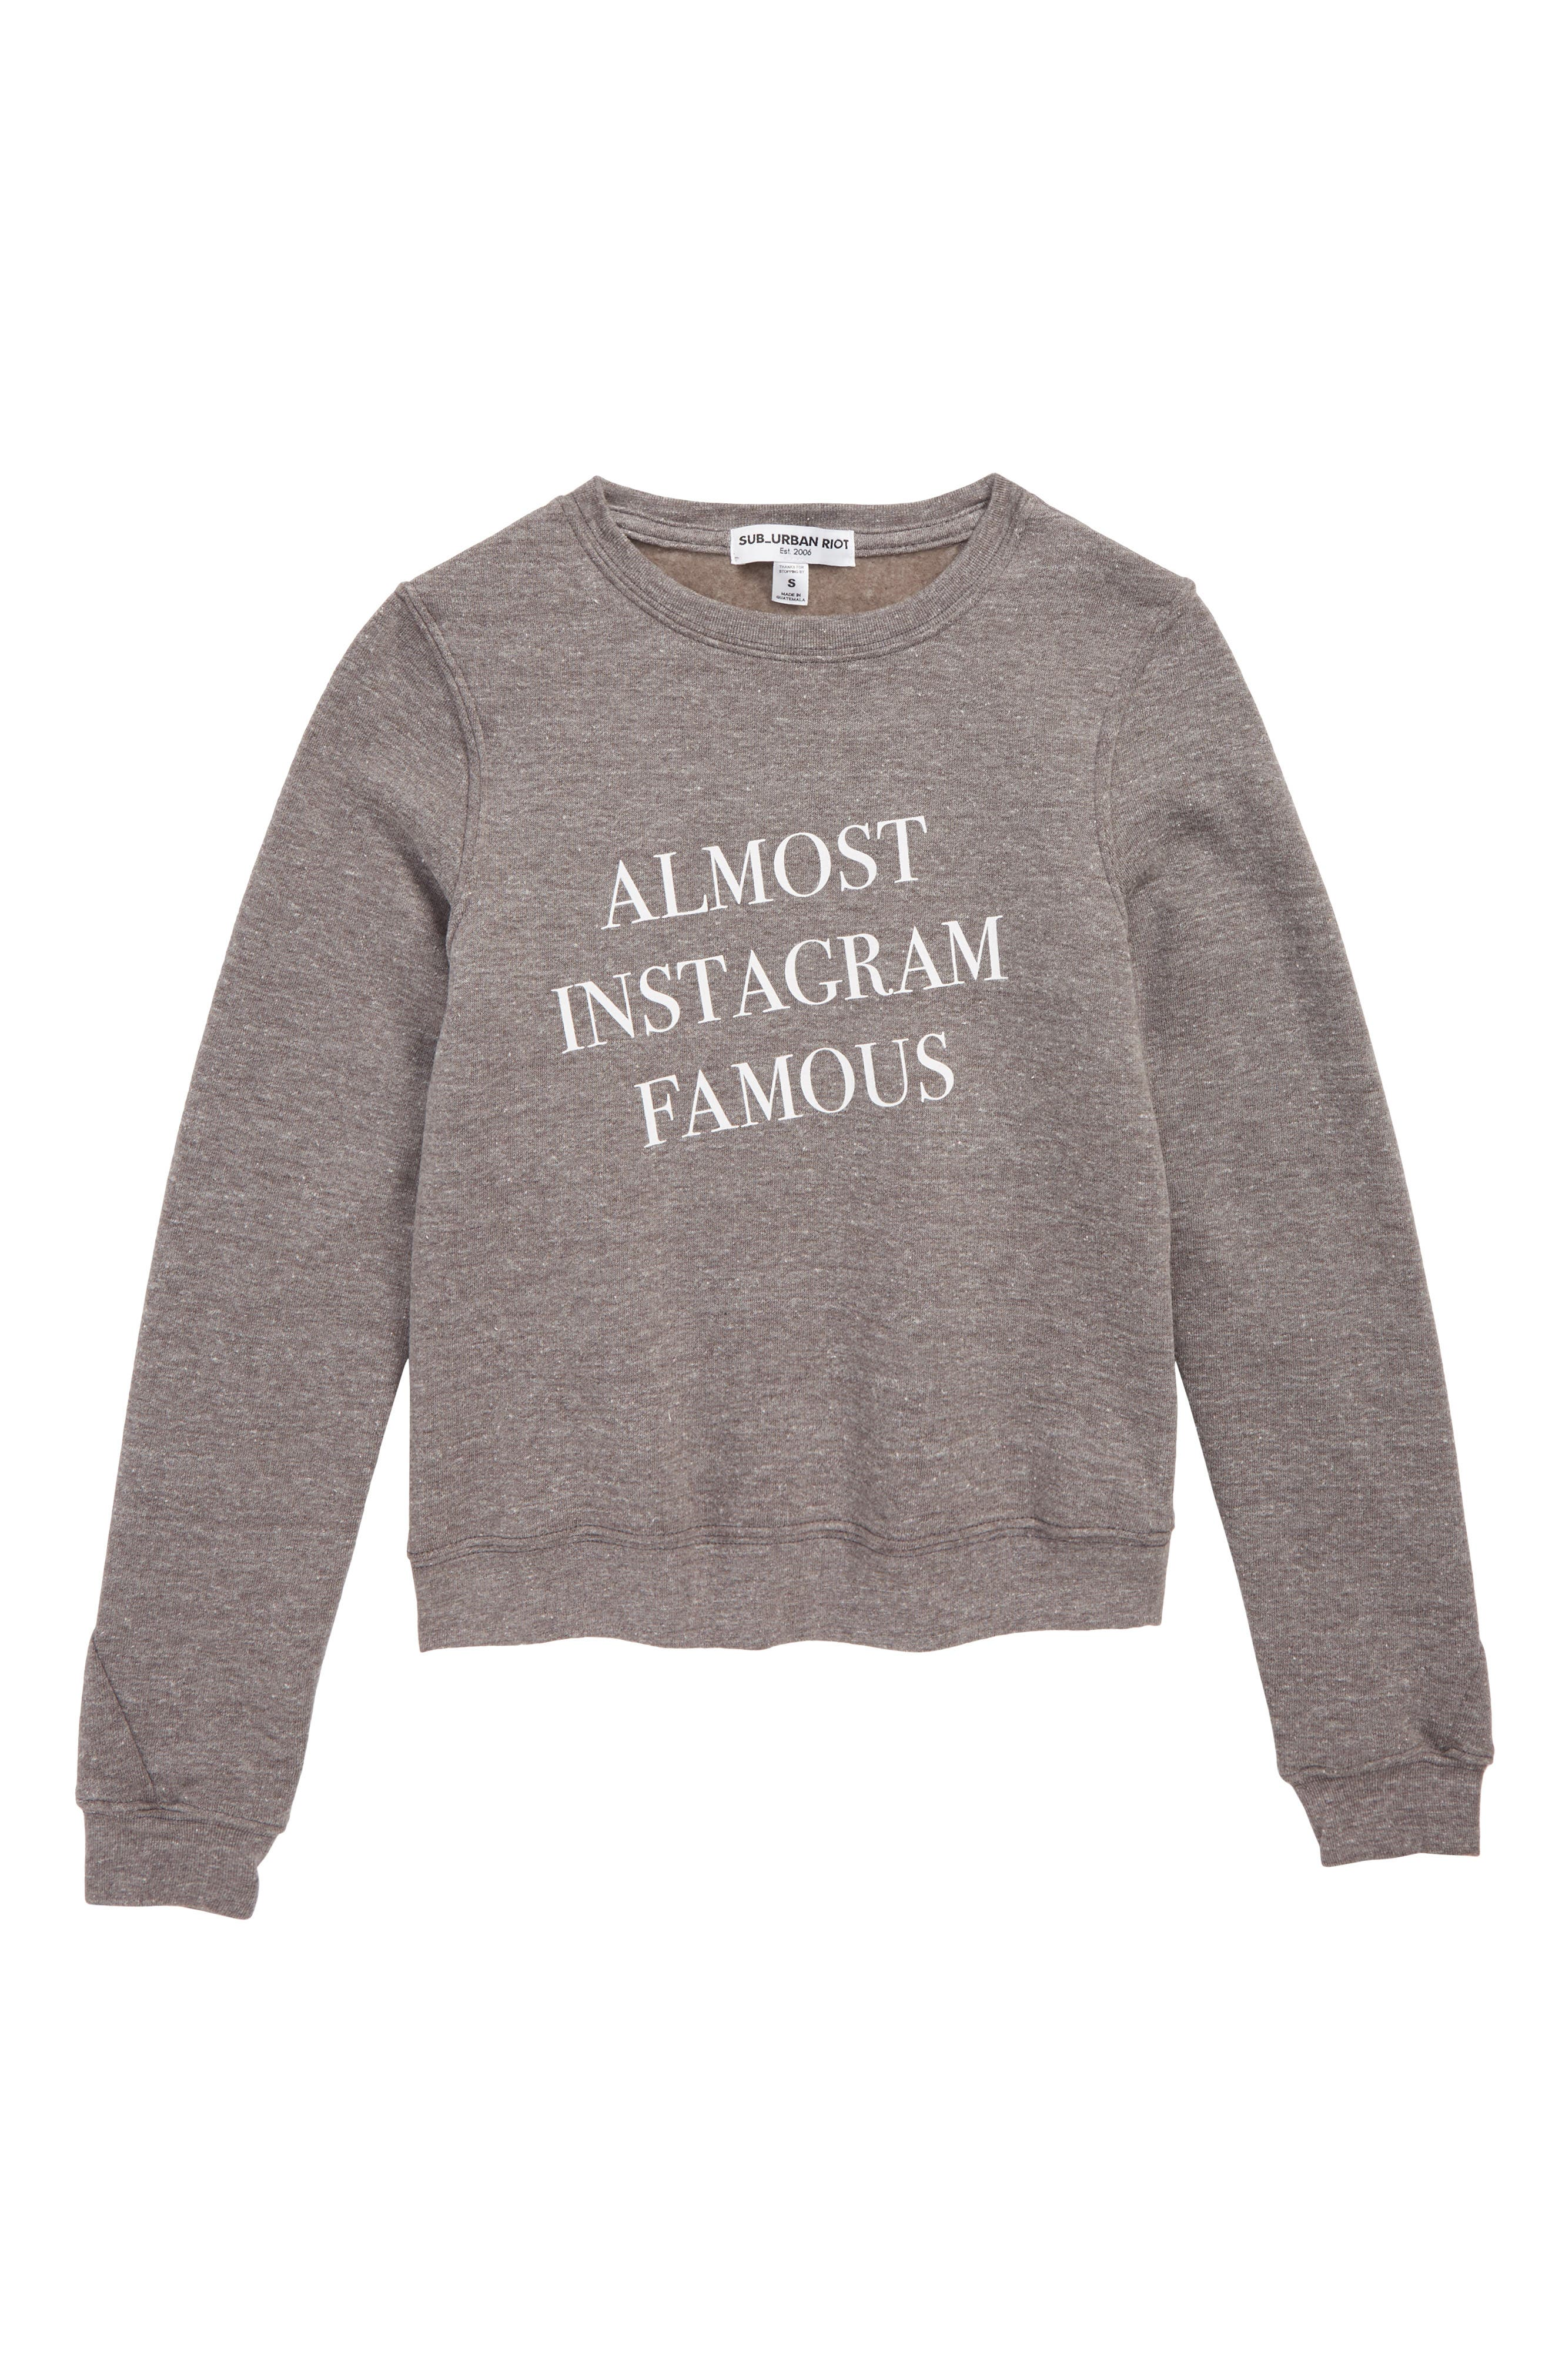 Almost Instagram Famous Pullover,                             Main thumbnail 1, color,                             GRAY